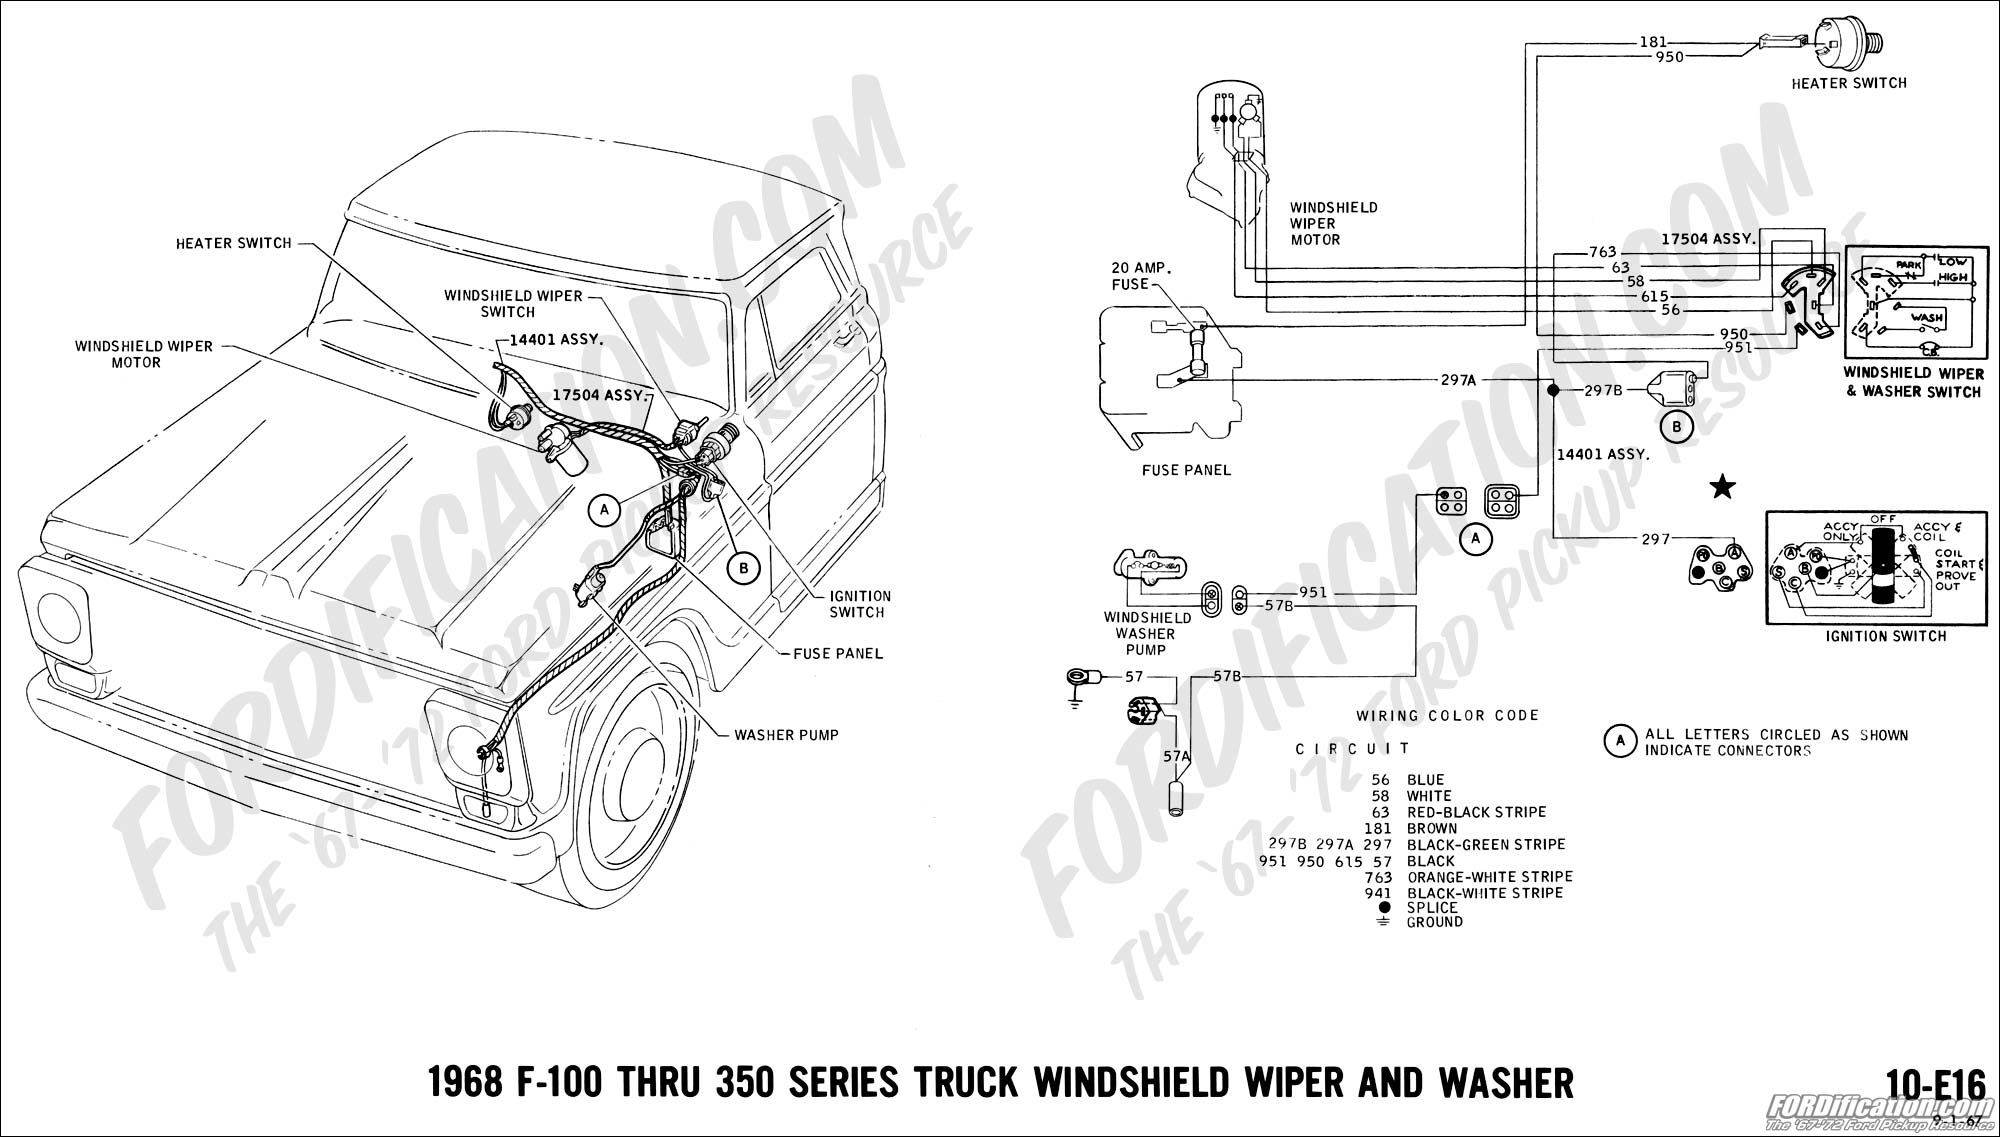 Ford Windshield Wiper Motor Wiring Diagram 66 77 Early Library 1967 Mustang Fuse Box 1968 F 100 Thru 350 And Washer Truck Technical Drawings Schematics Section H